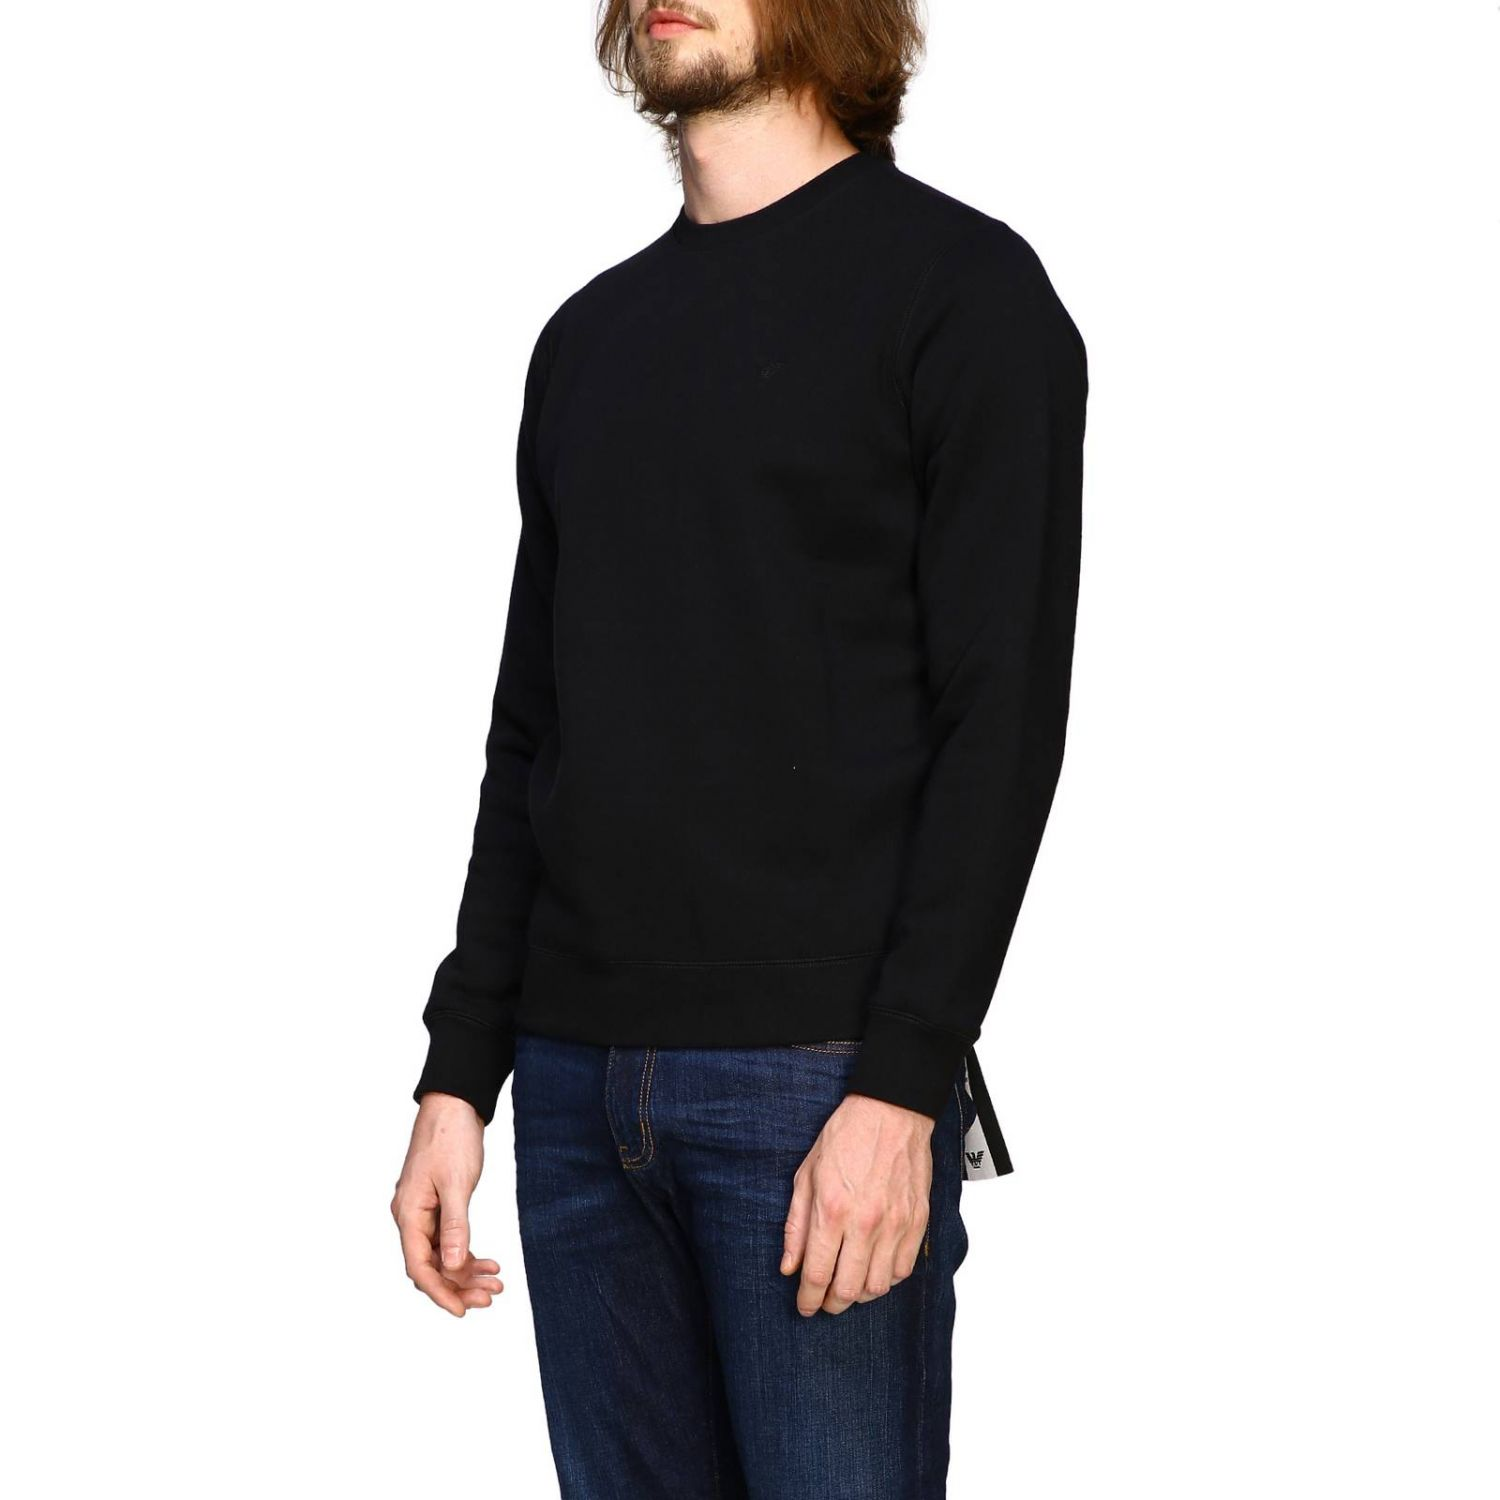 Sweater men Emporio Armani black 4